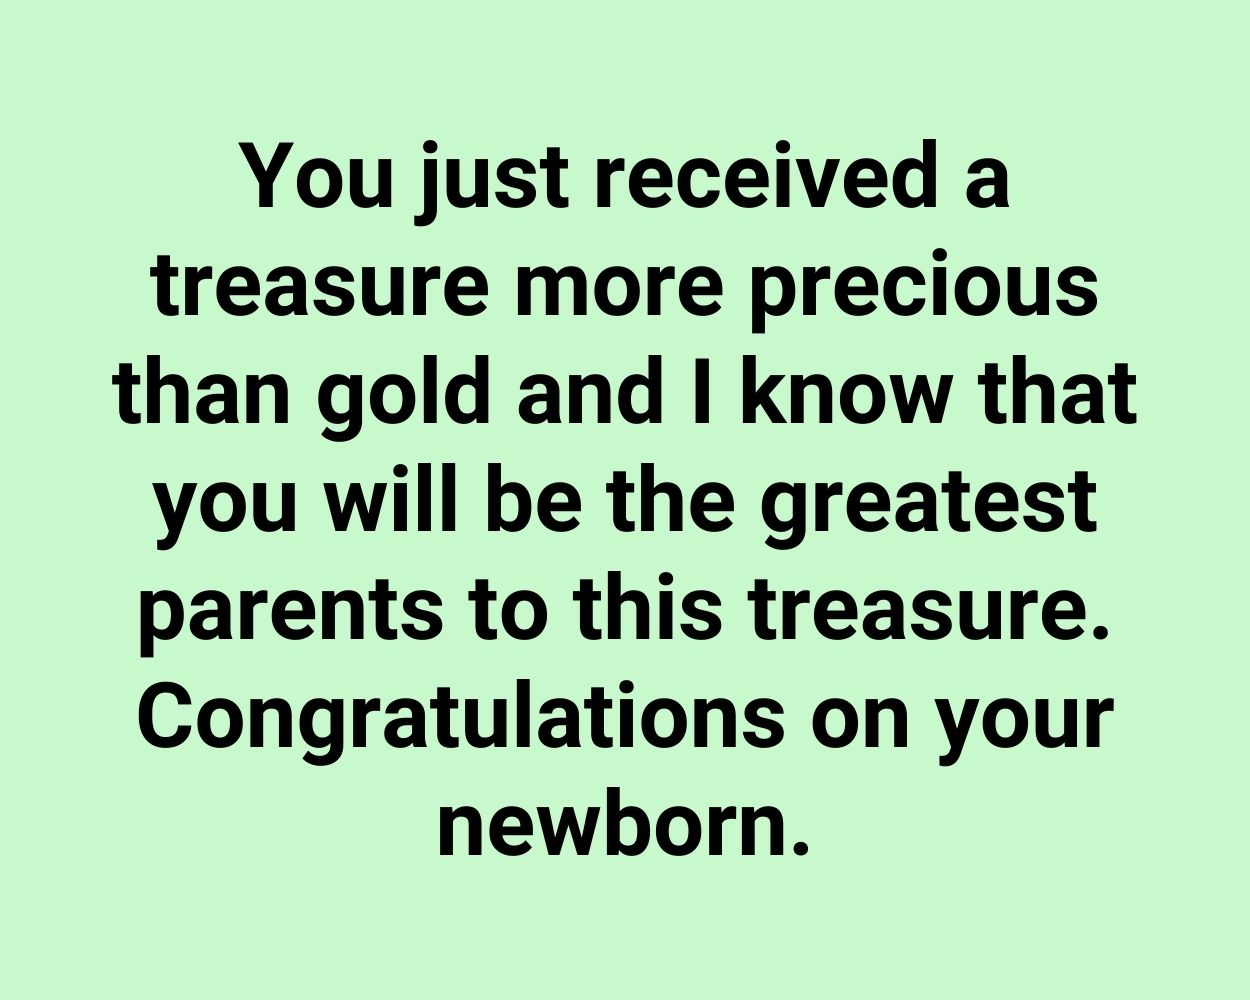 You just received a treasure more precious than gold and I know that you will be the greatest parents to this treasure. Congratulations on your newborn.